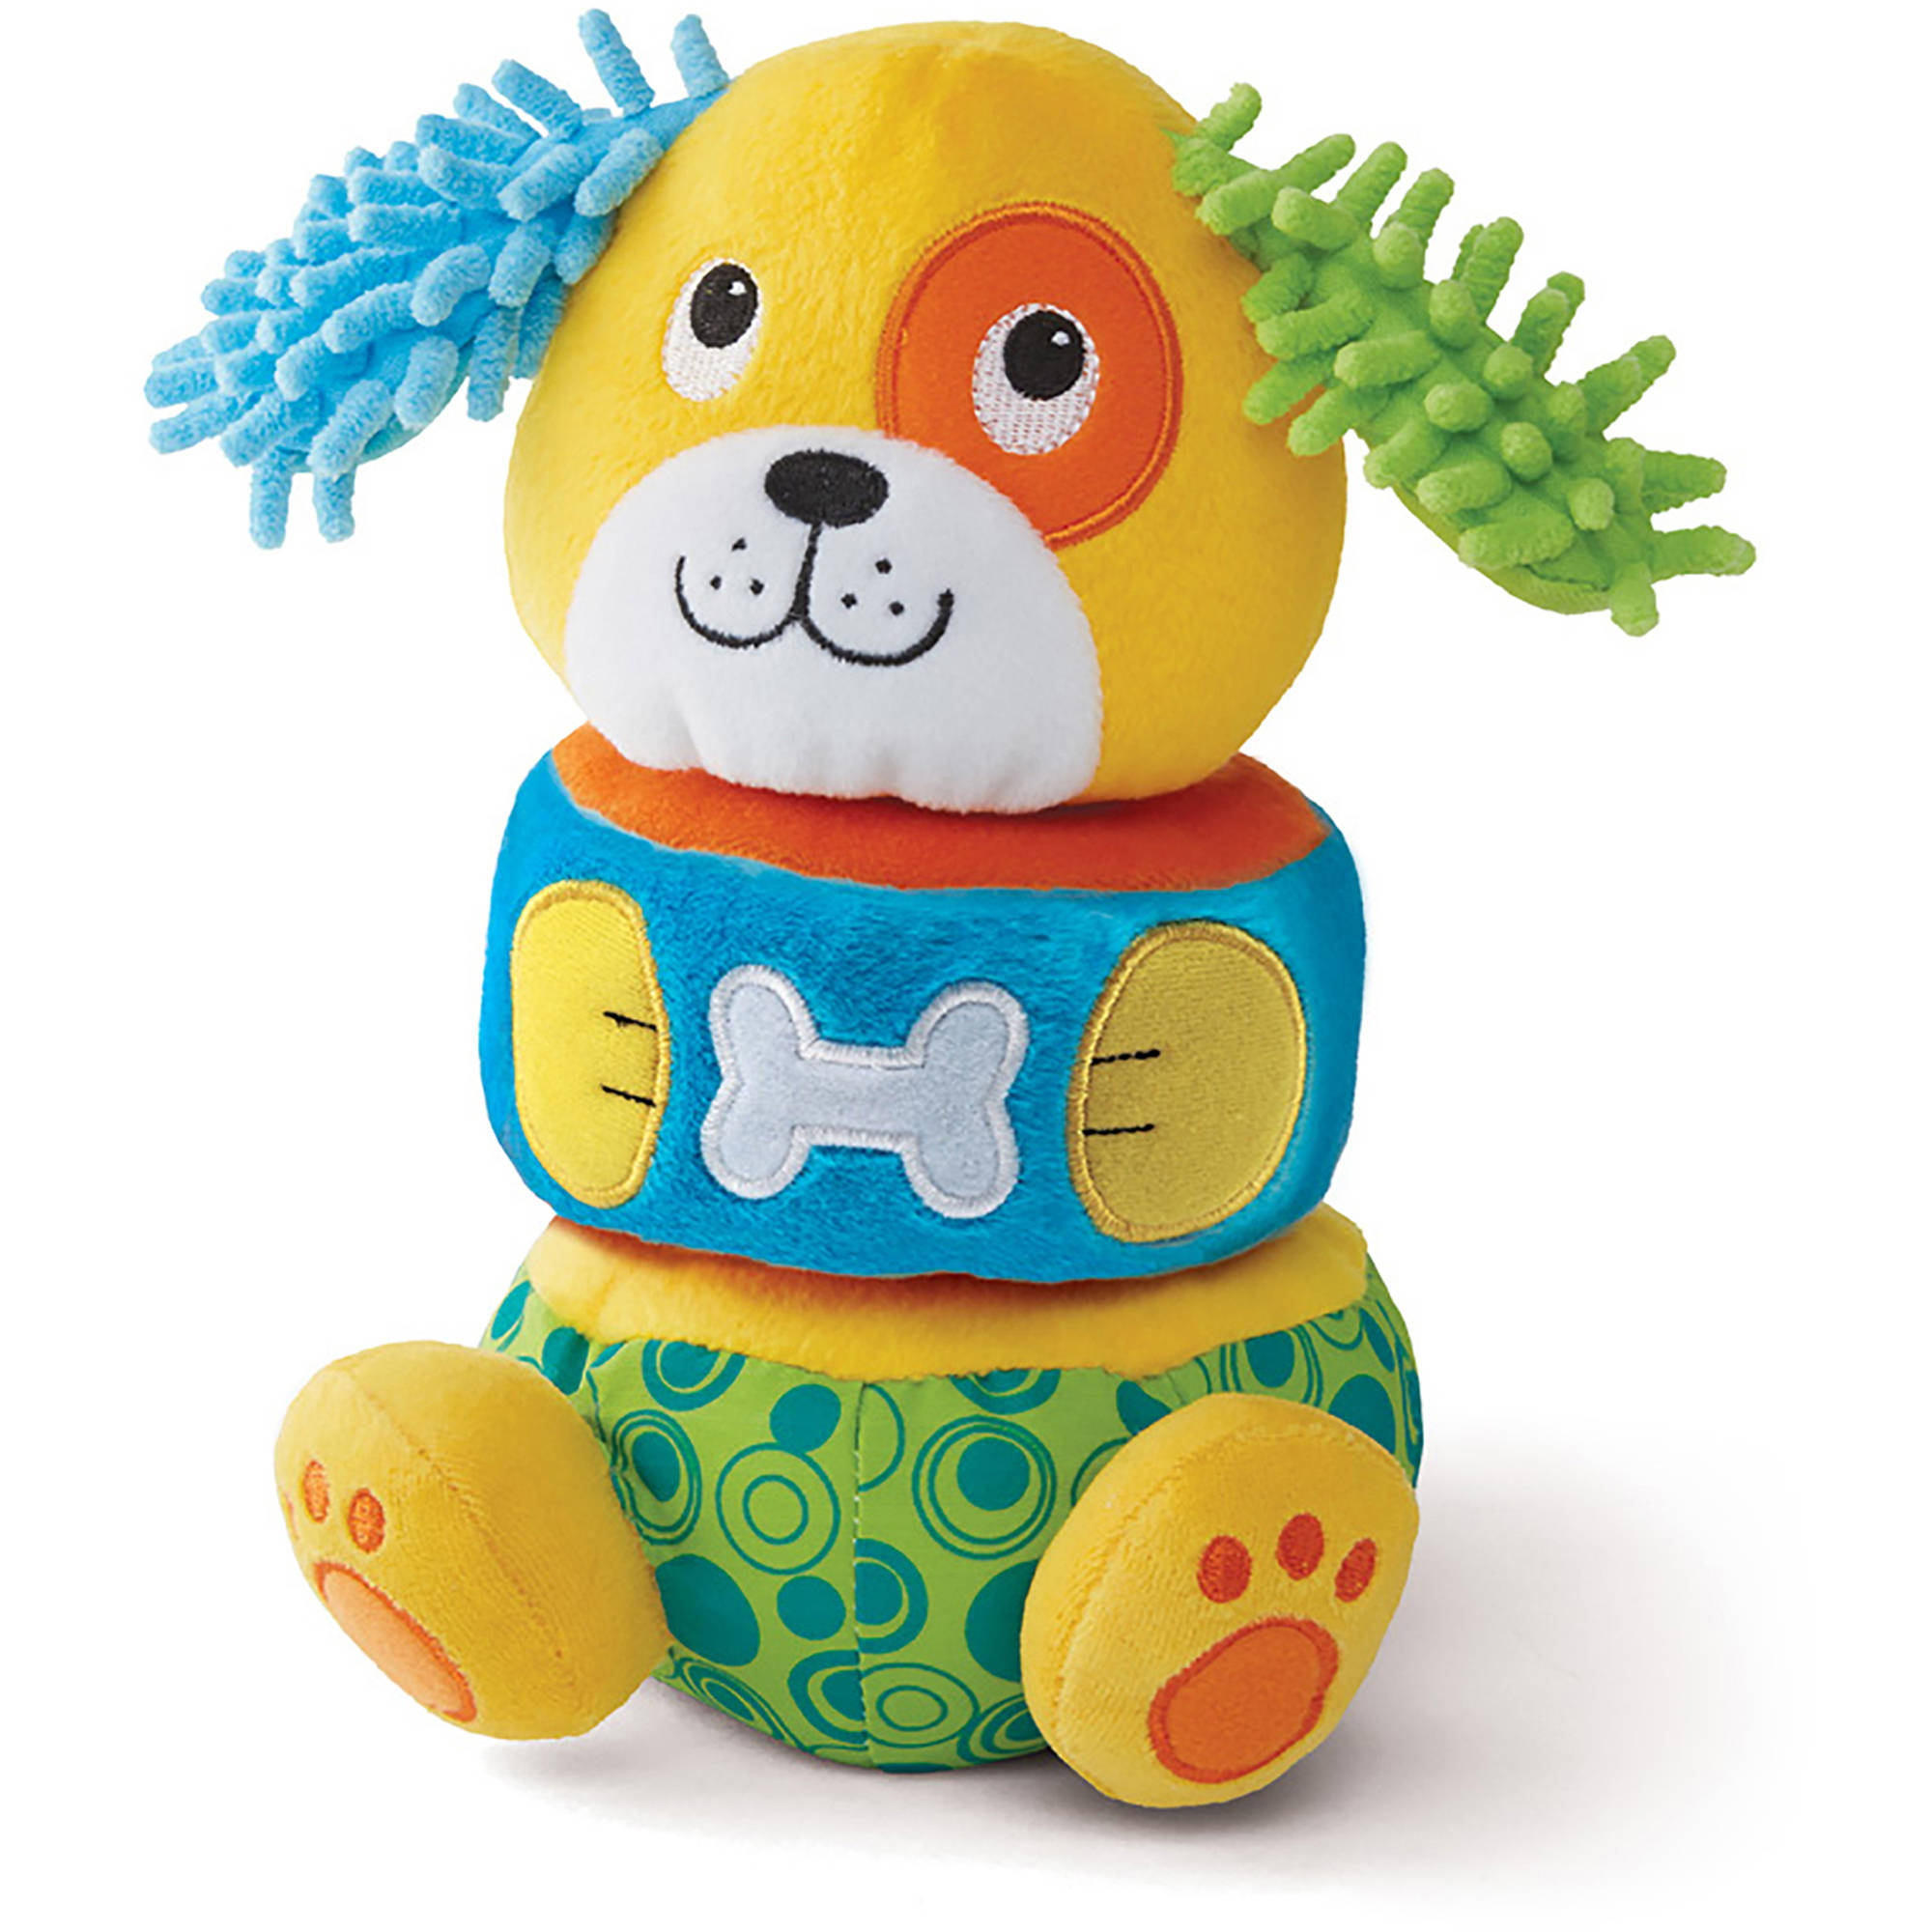 International Playthings Earlyears Lil' Puppy Stacker